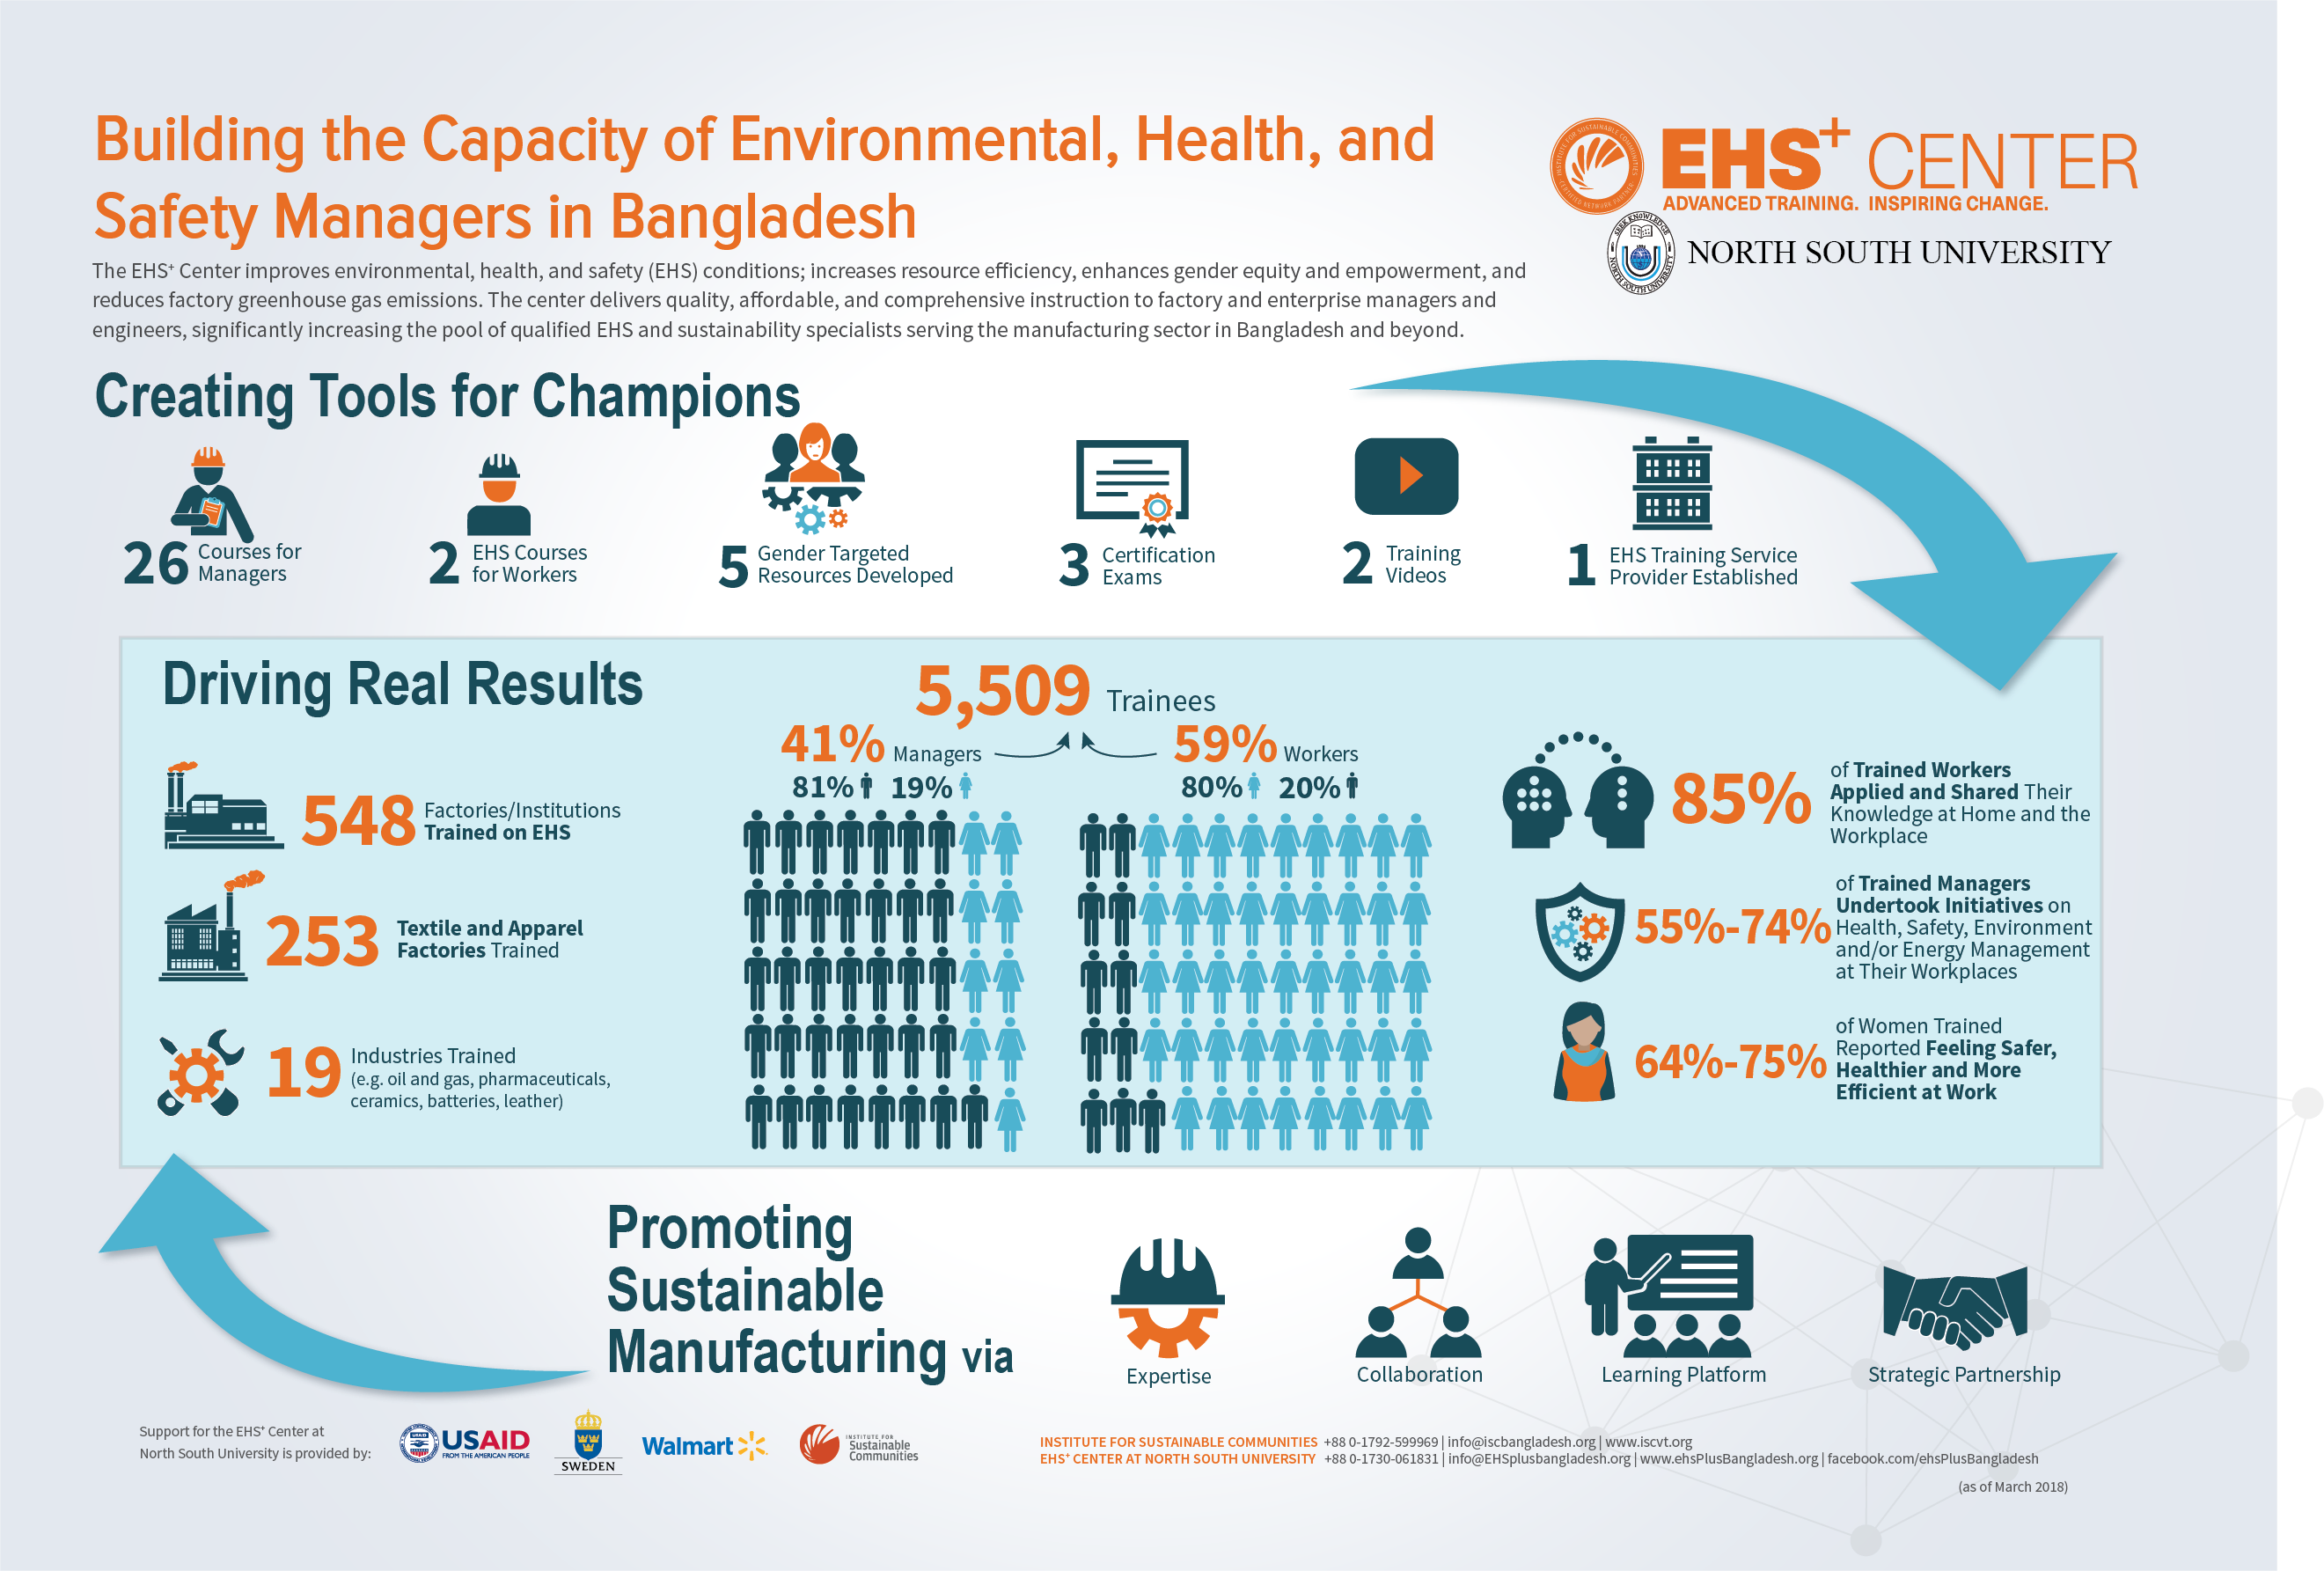 Building Capacity for EHS Workers in Bangladesh Infographic